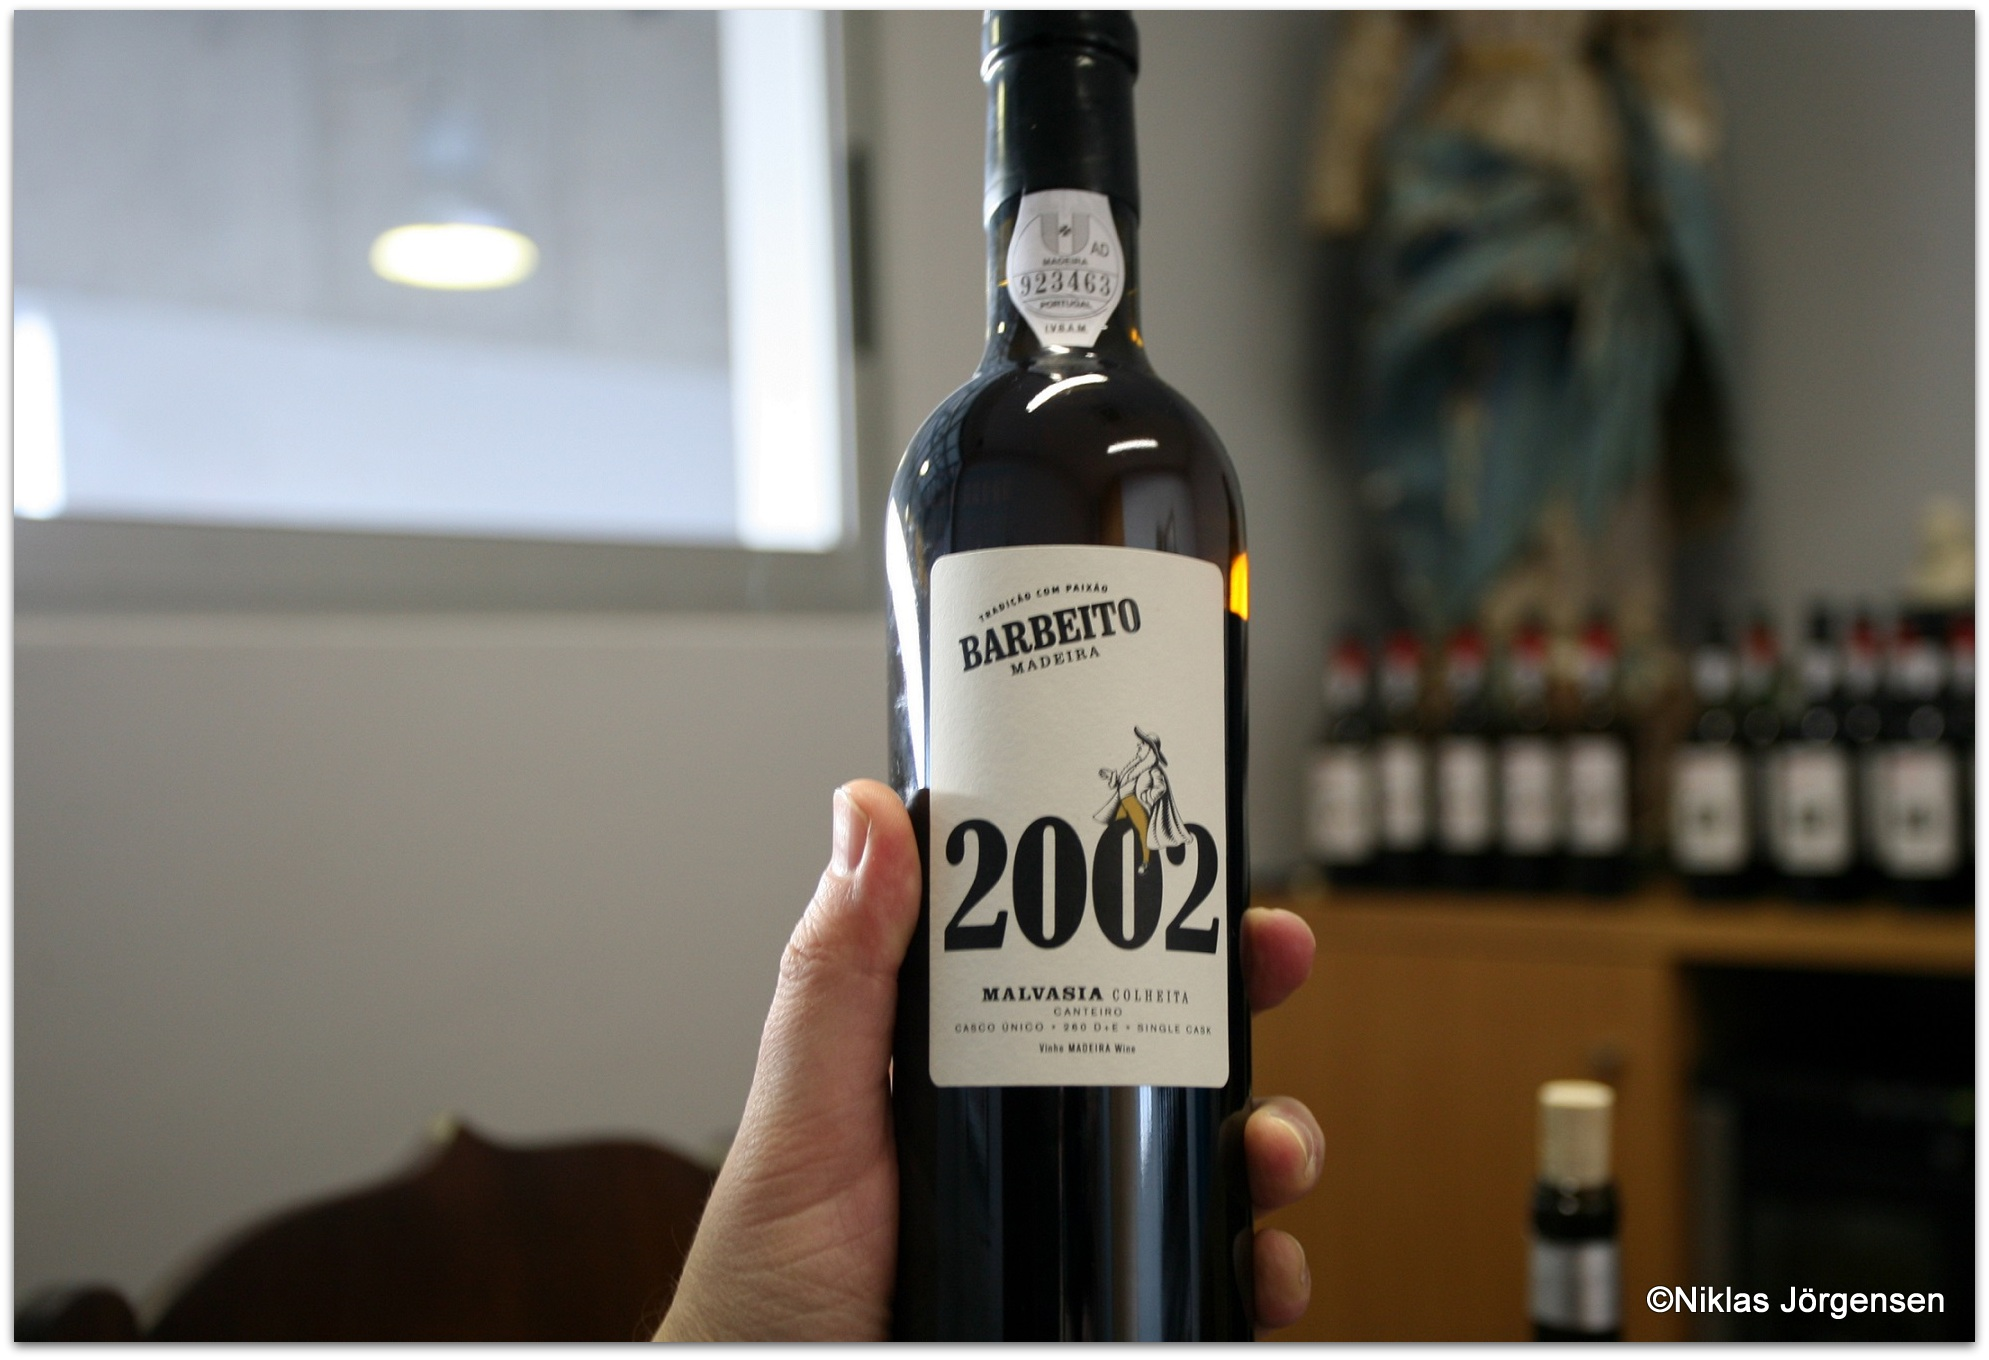 2002 Malvasia Single Cask 260 D + E